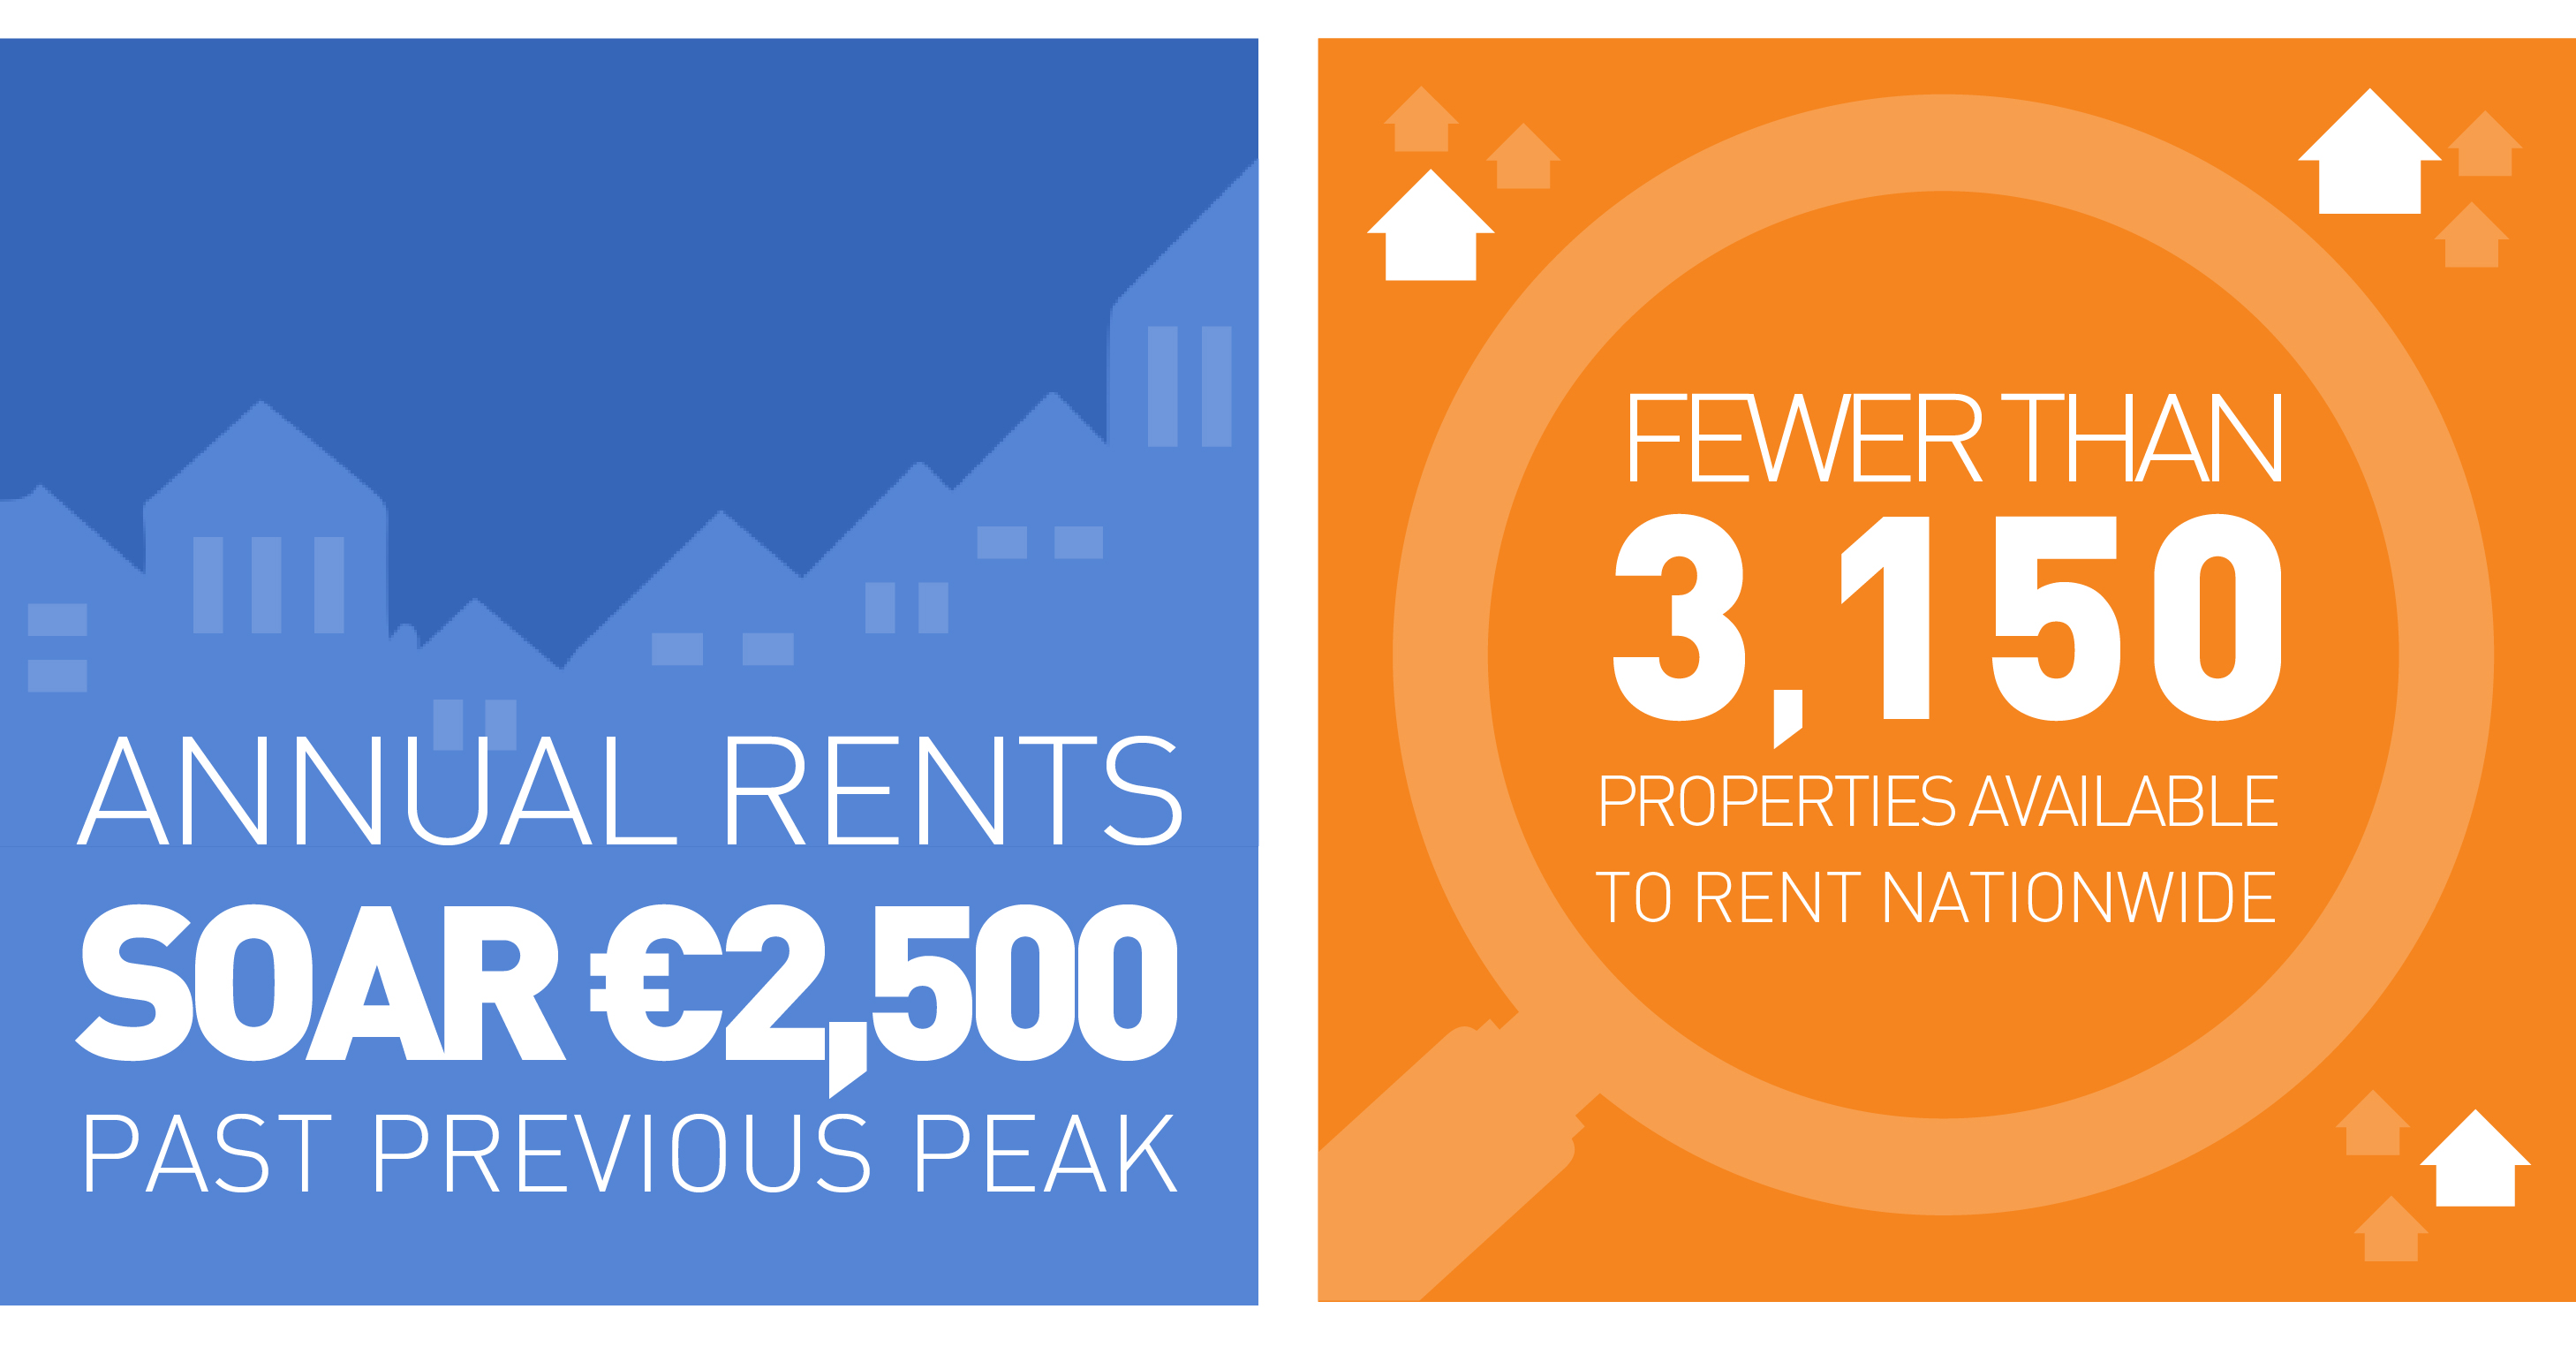 Anual rents soar